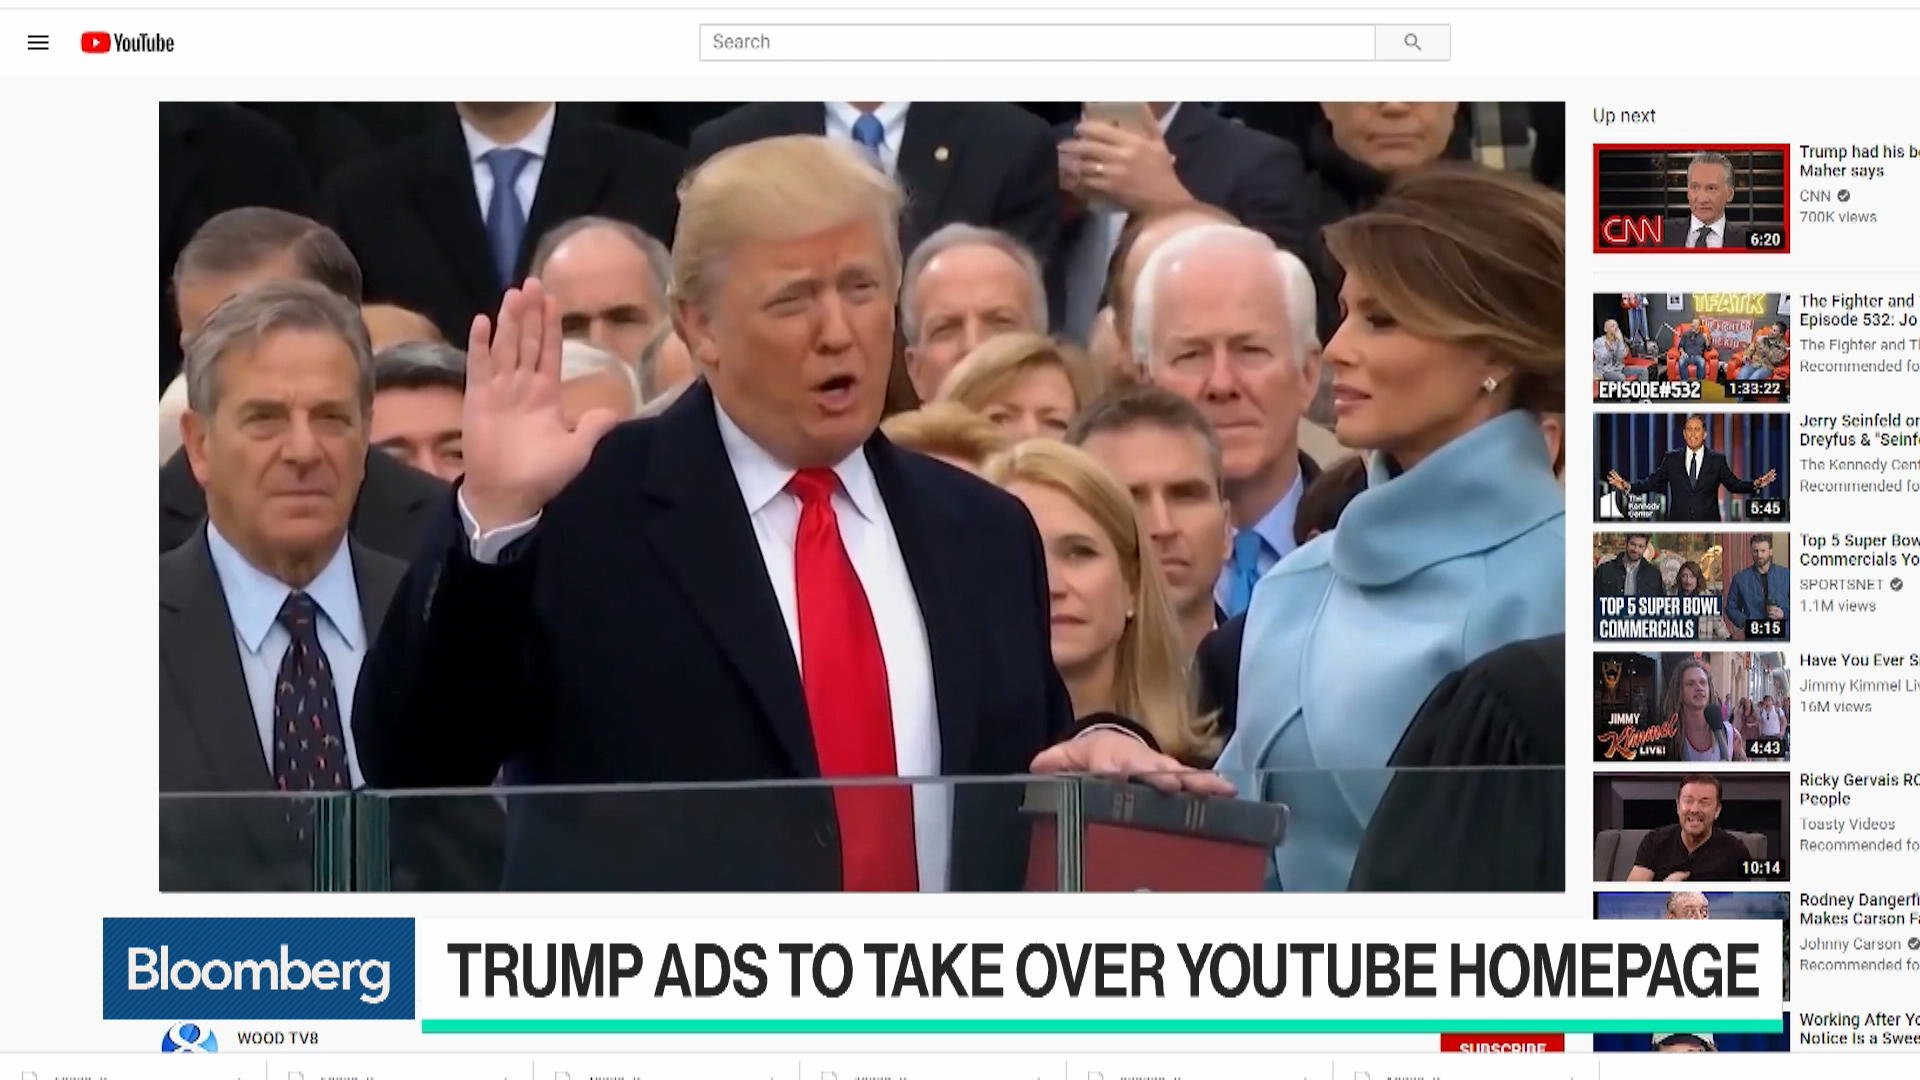 Trump Campaign to Take Over YouTube Home Page on Election Day